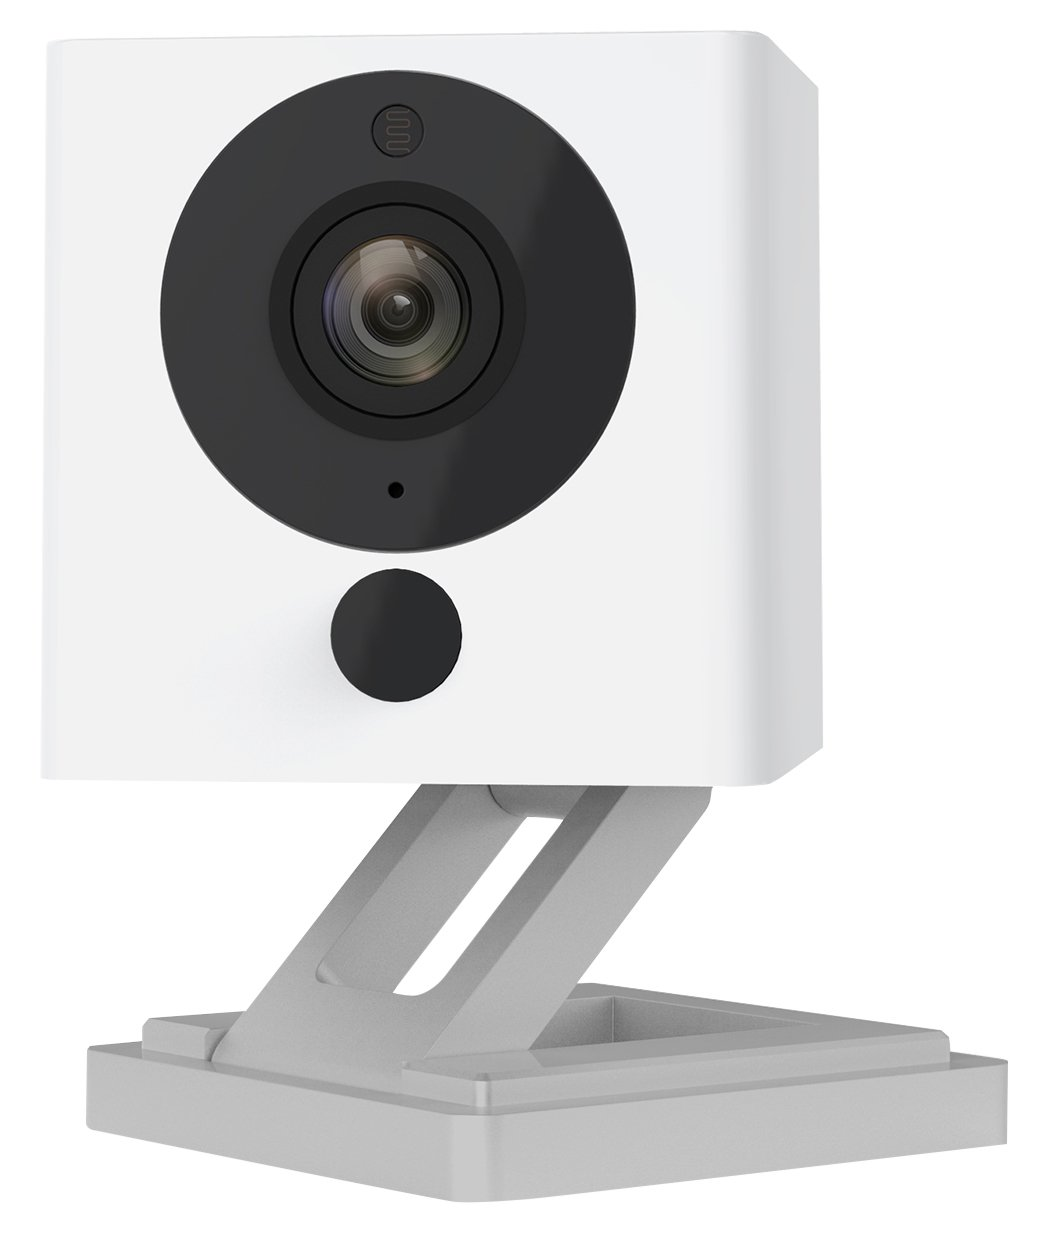 Wyze Security Camera